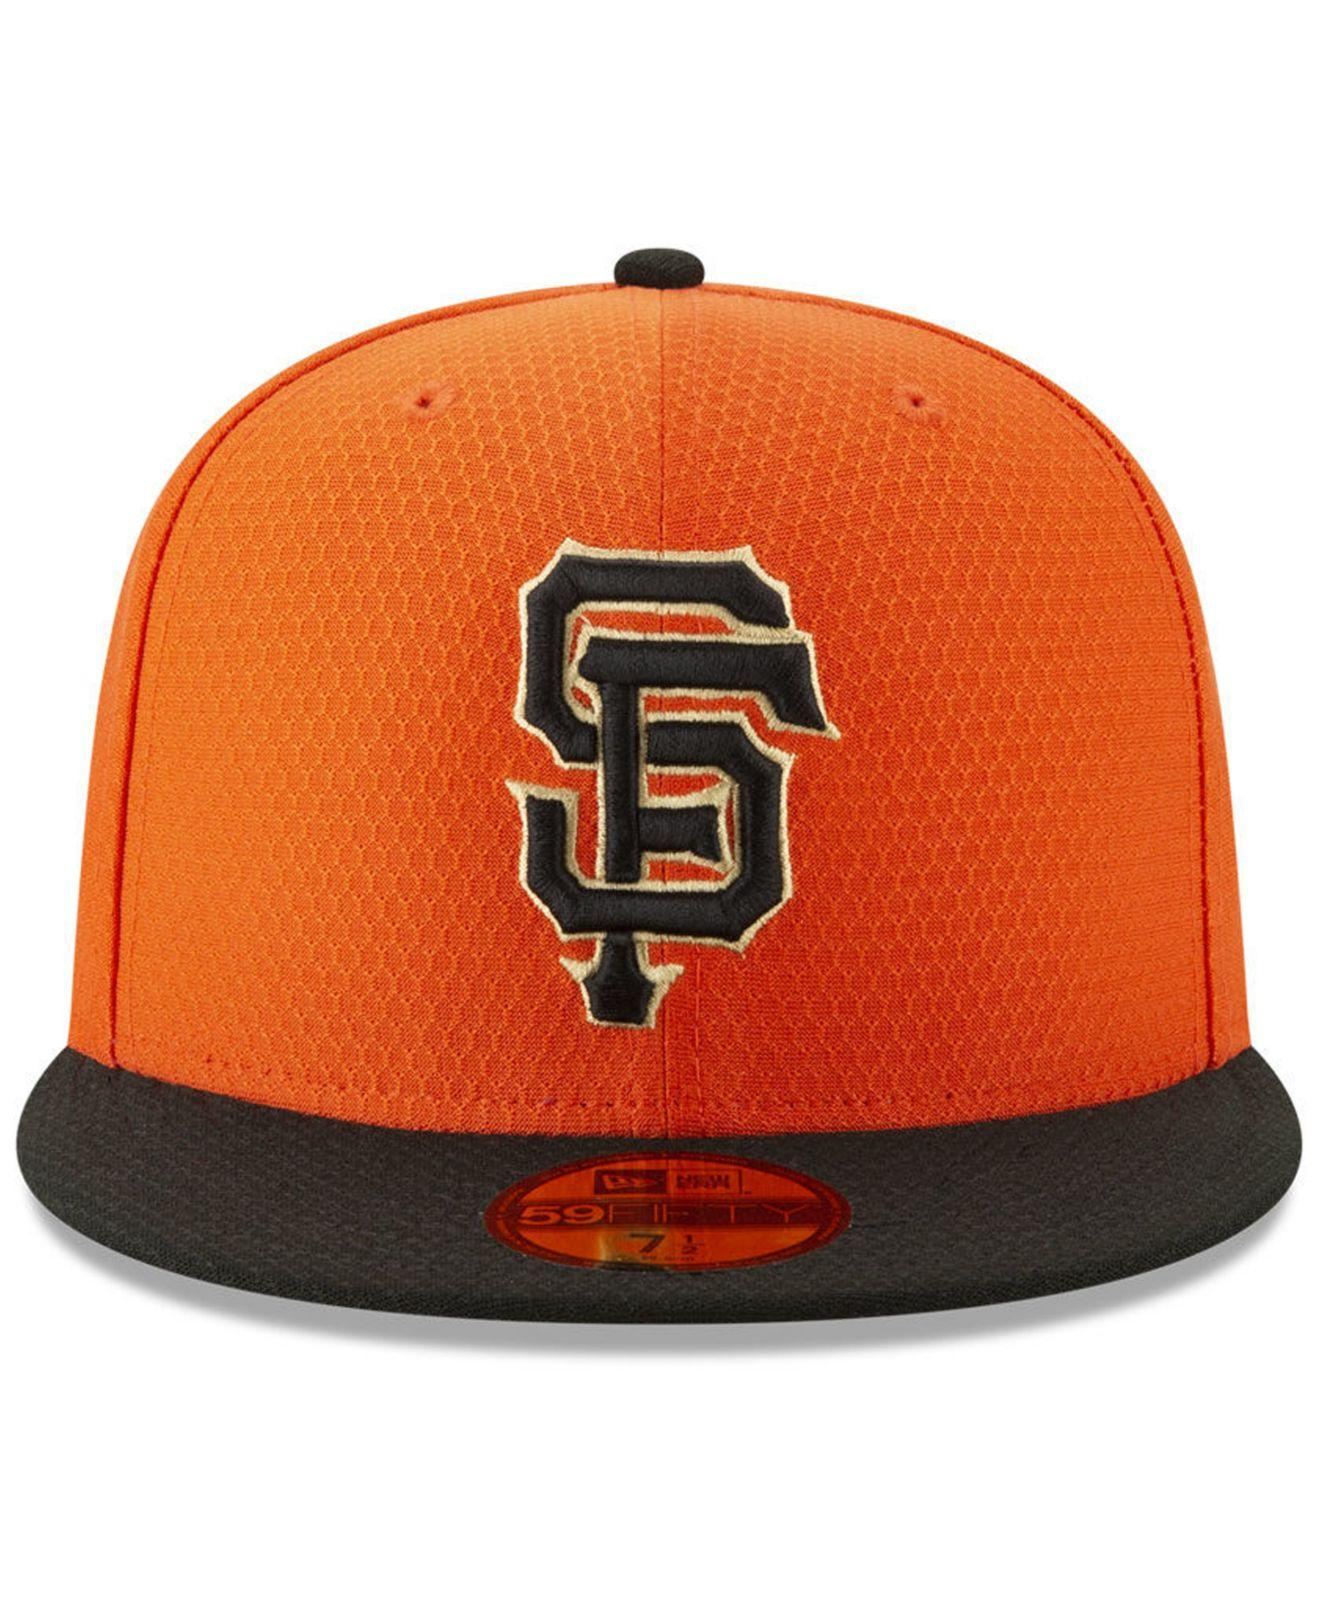 new product 6e936 ae692 Lyst - KTZ San Francisco Giants Batting Practice 59fifty-fitted Cap in  Orange for Men